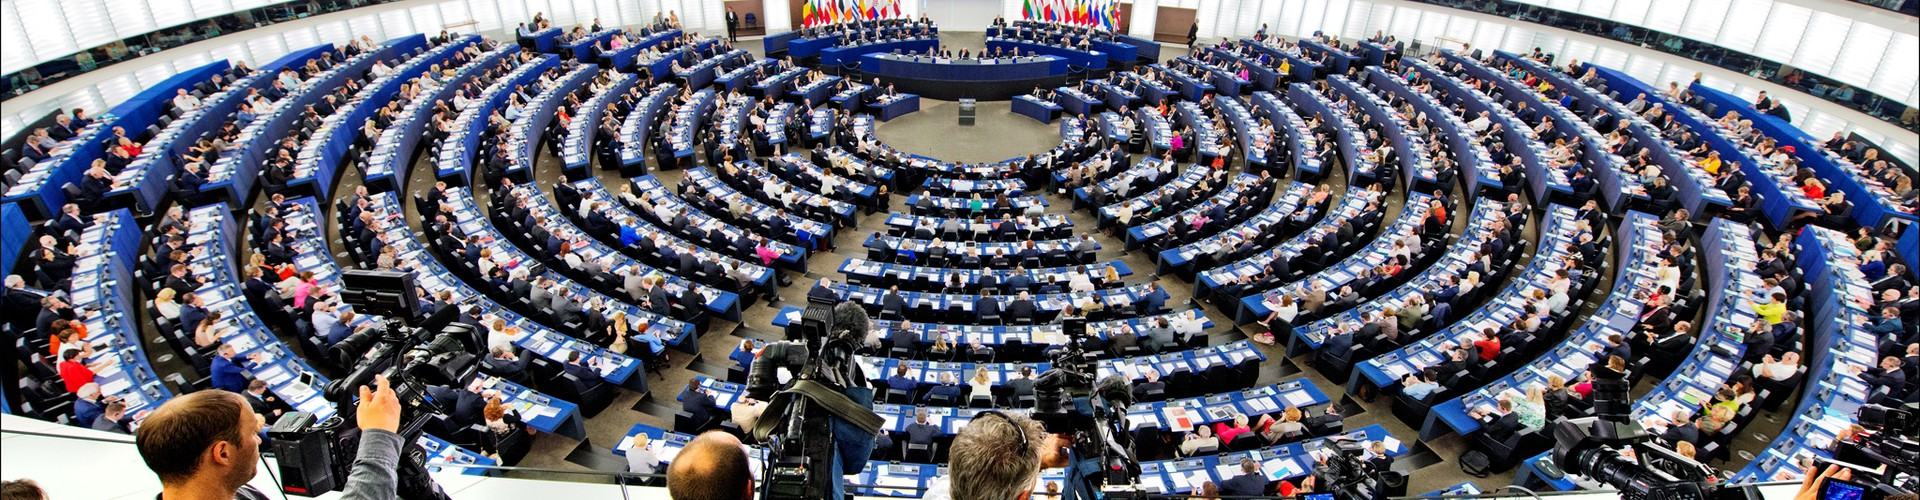 EU Plenary (Credit: European Union 2018 - European Parliament (distributed via Flickr))